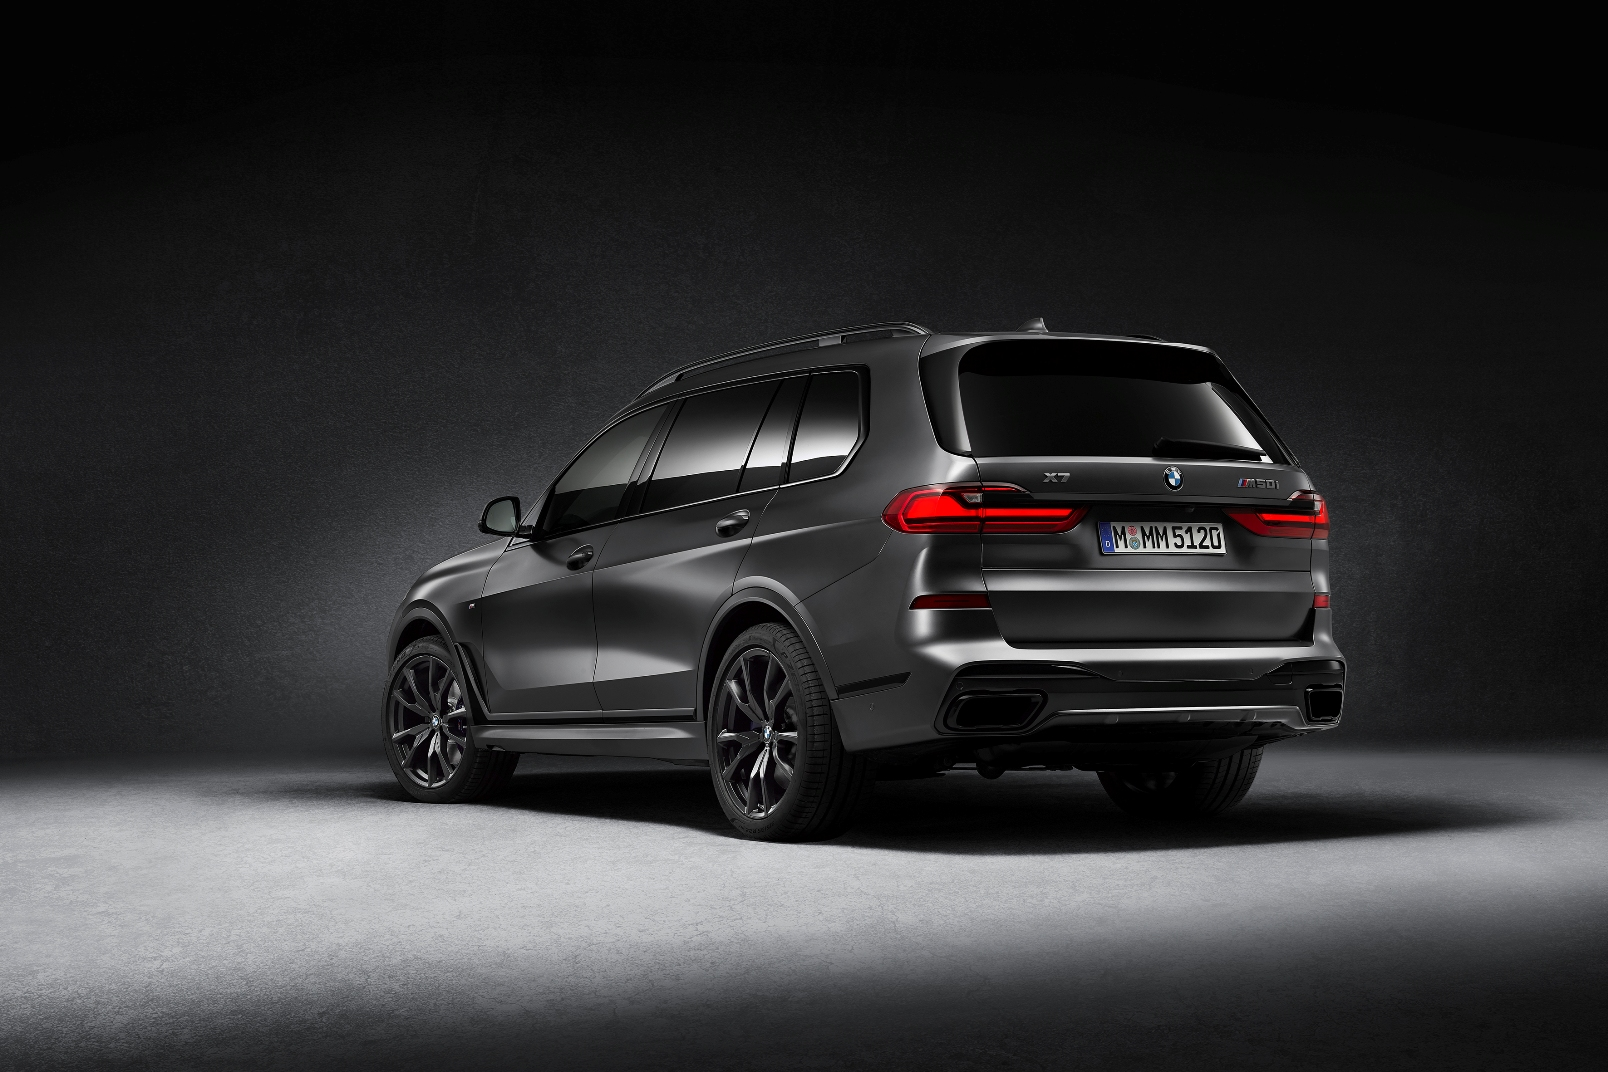 Bmw X7 Dark Shadow Edition (3)